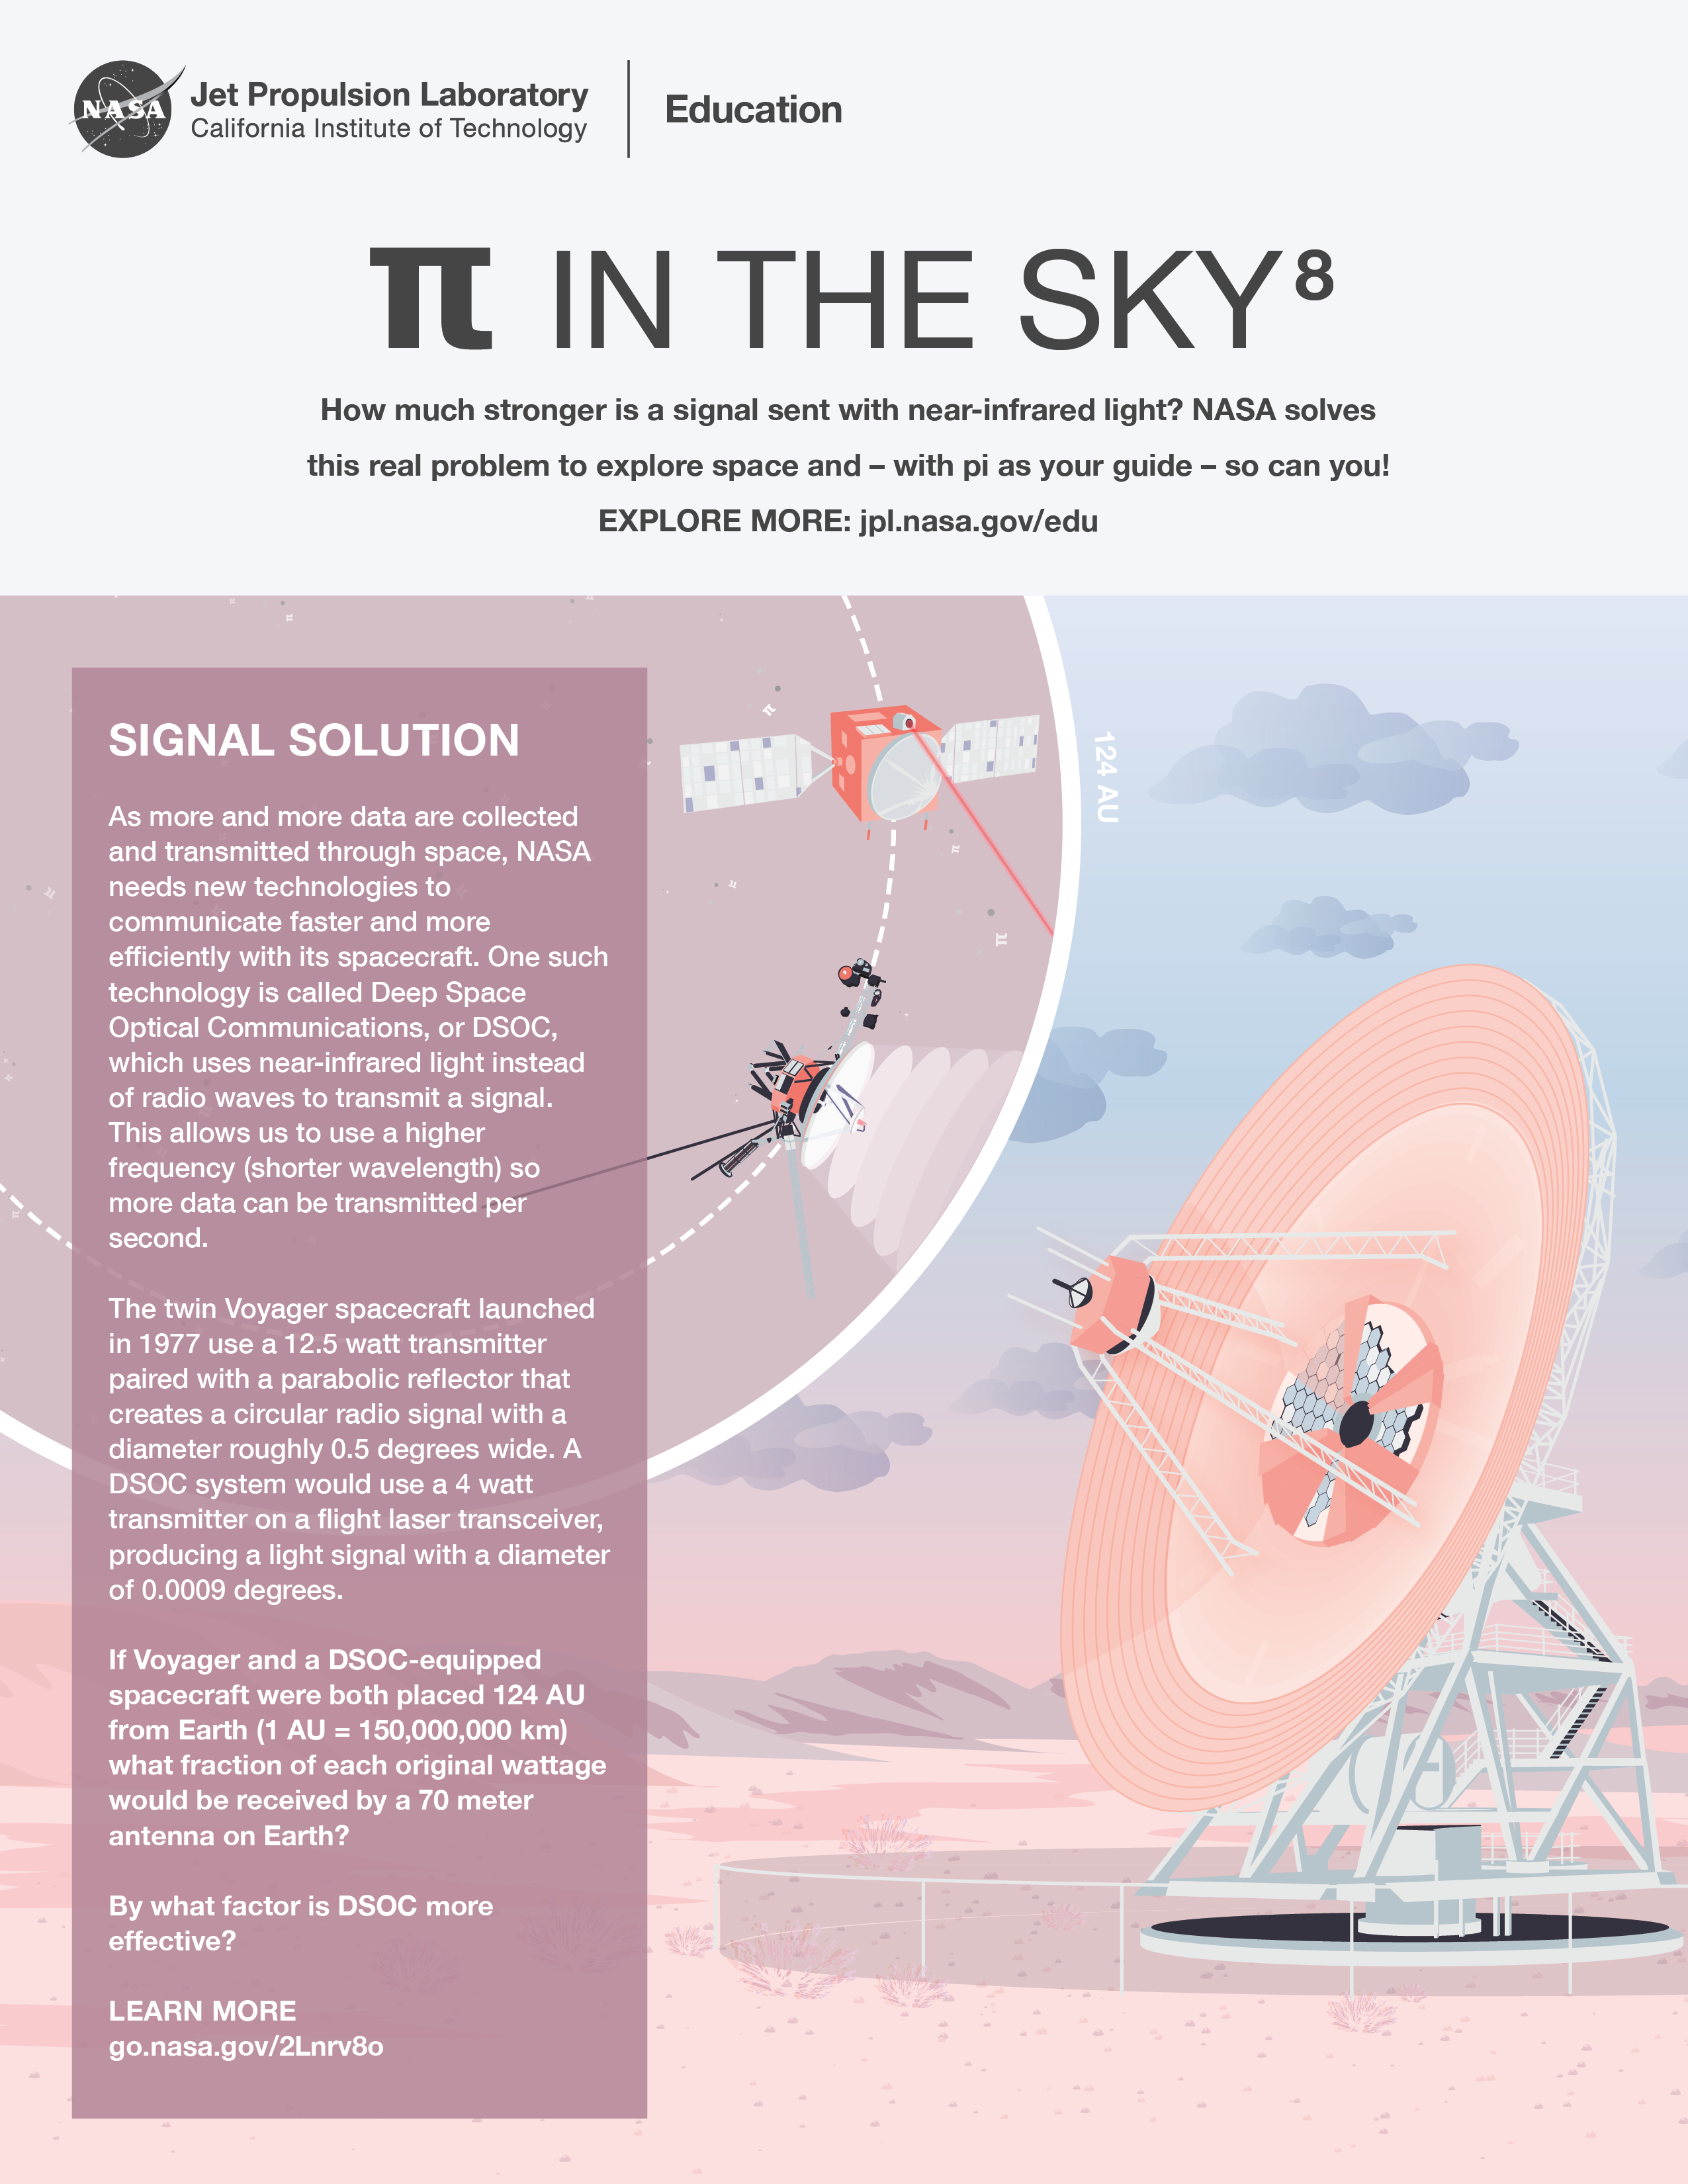 Illustration of a Deep Space Network antenna pointed toward an inset with two spacecraft transmitting from 124 AU